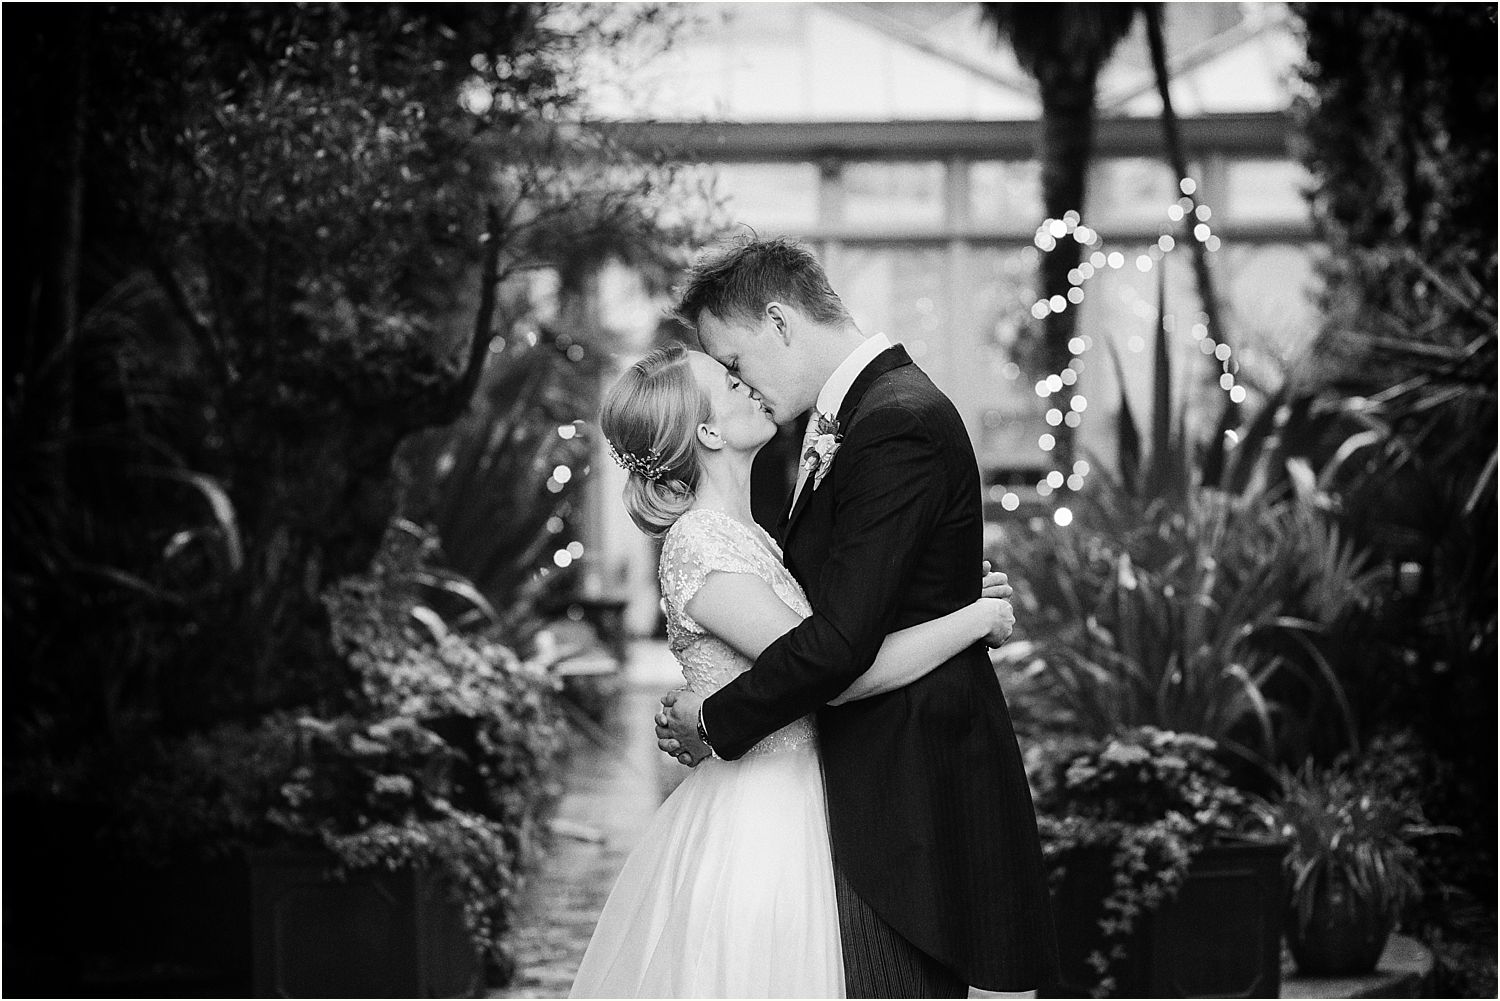 Kissing bride and groom at Surrey wedding venue, Hampton Court House